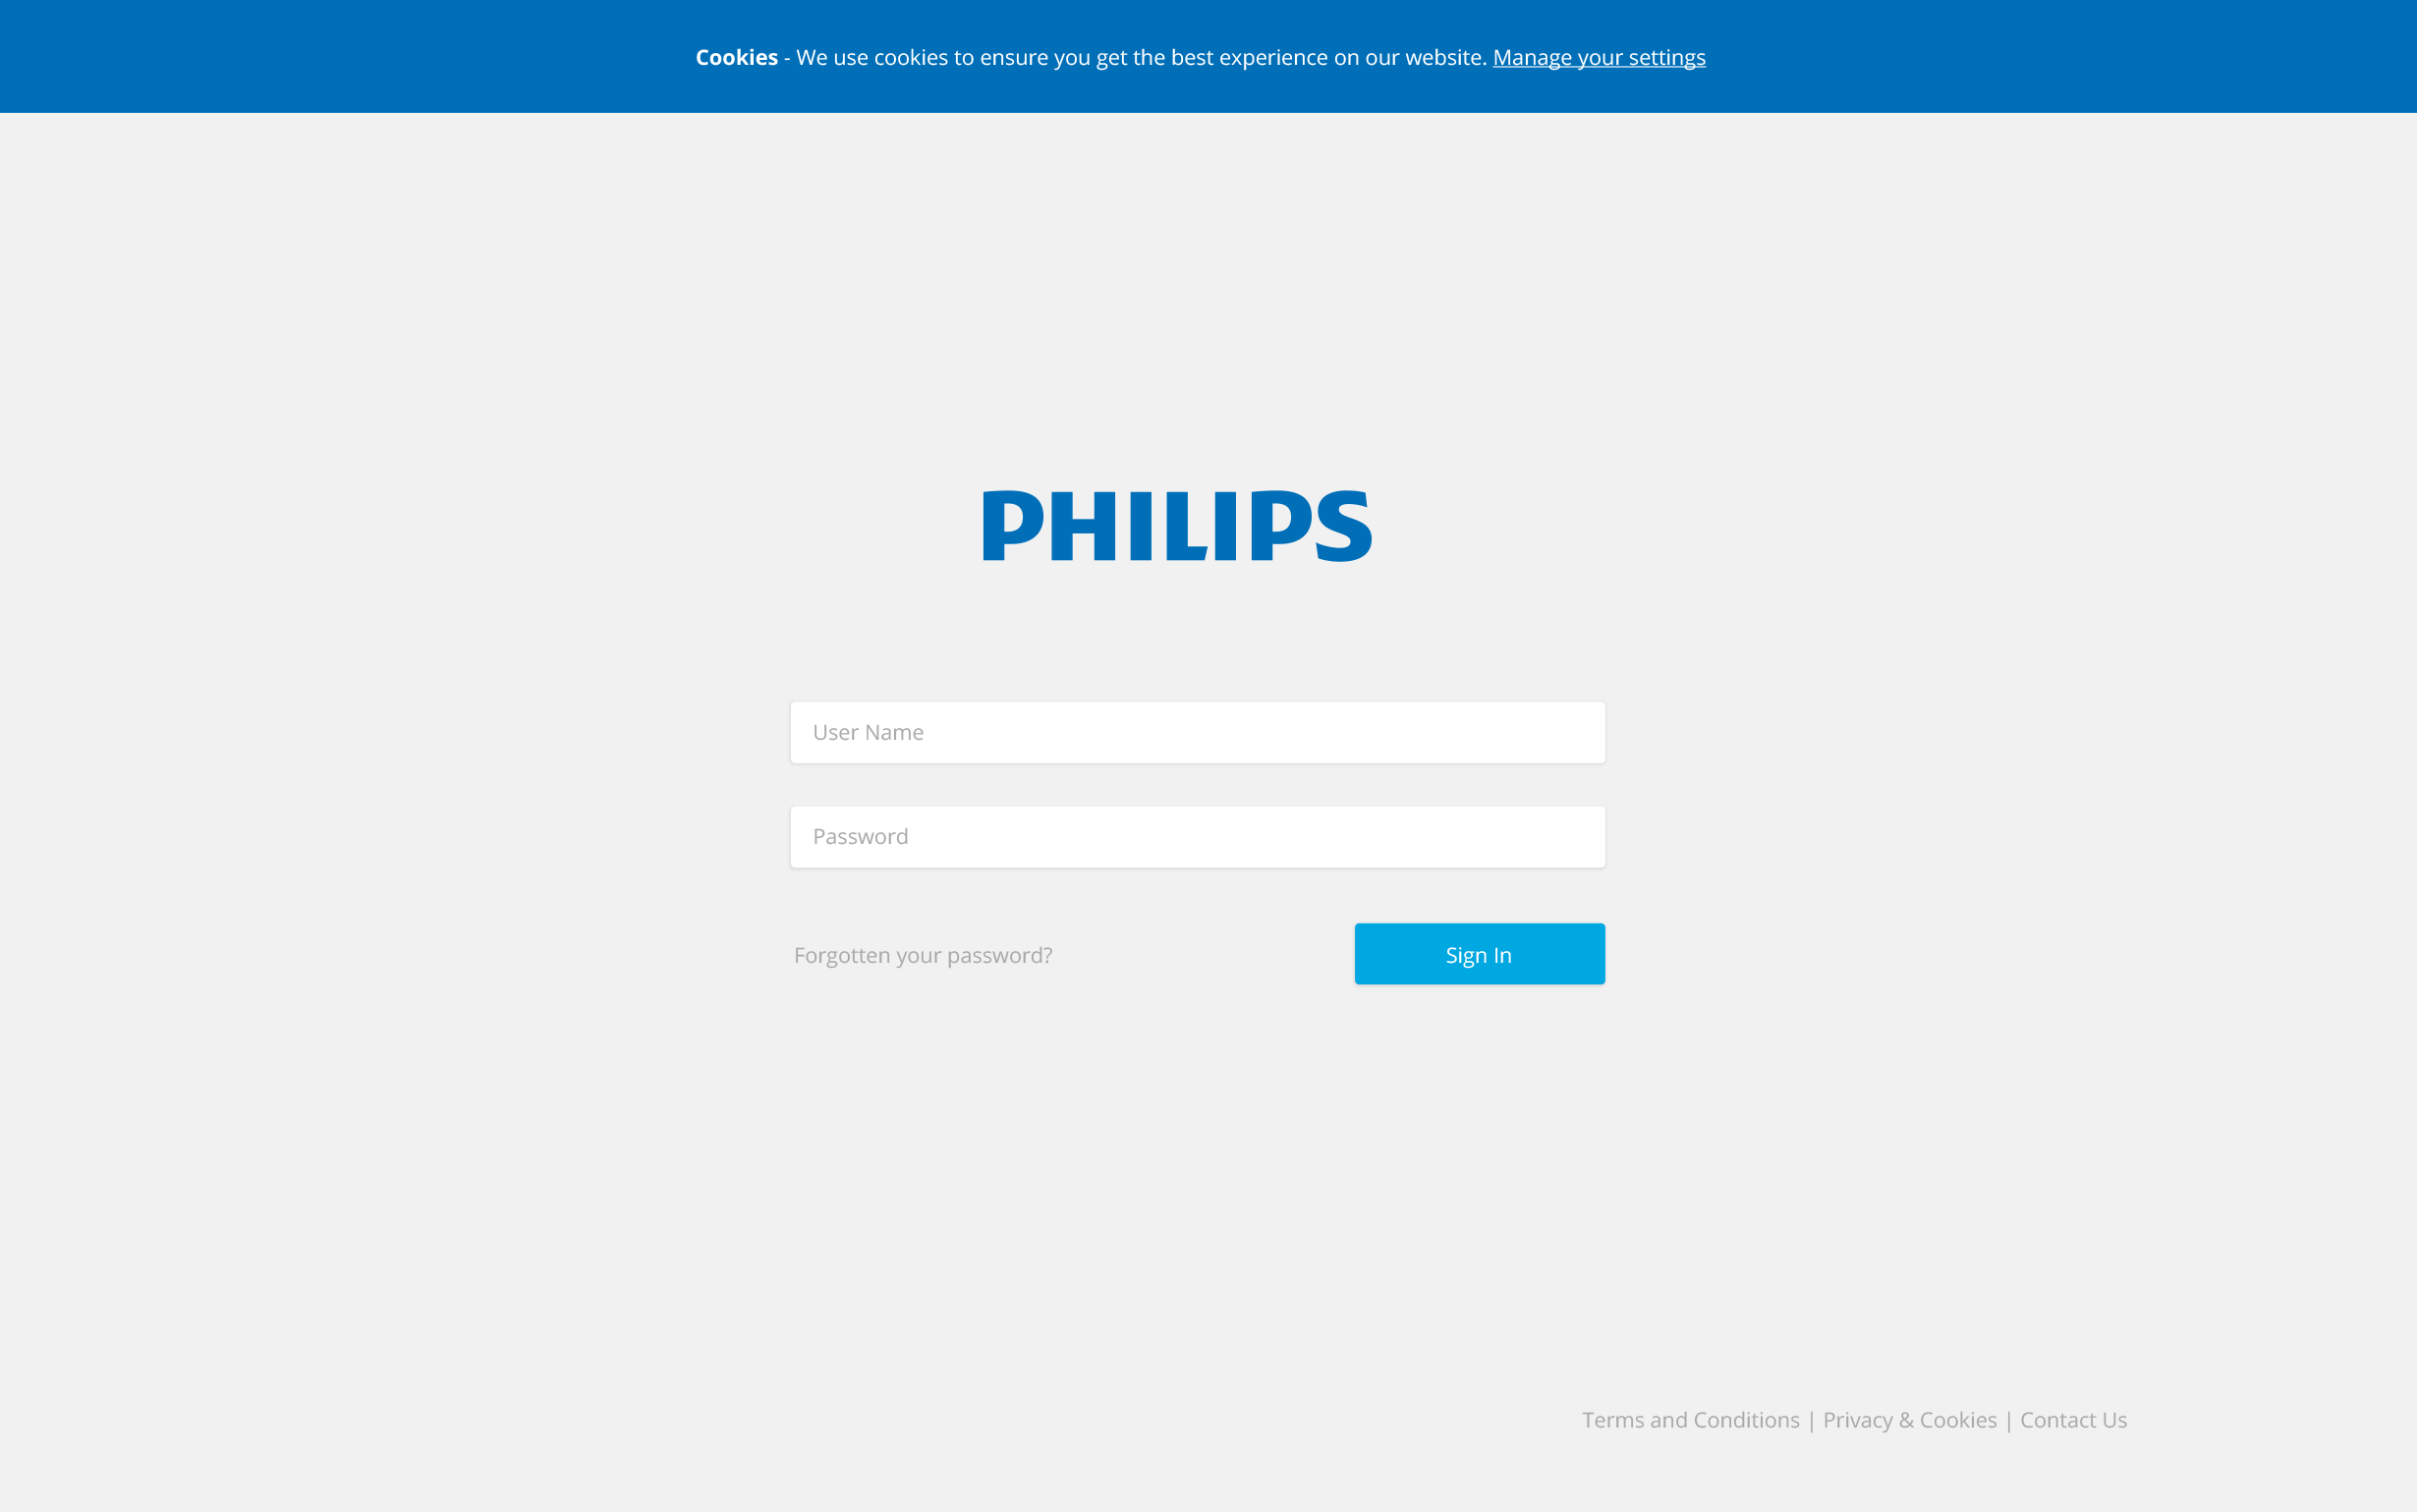 philips-grt-login